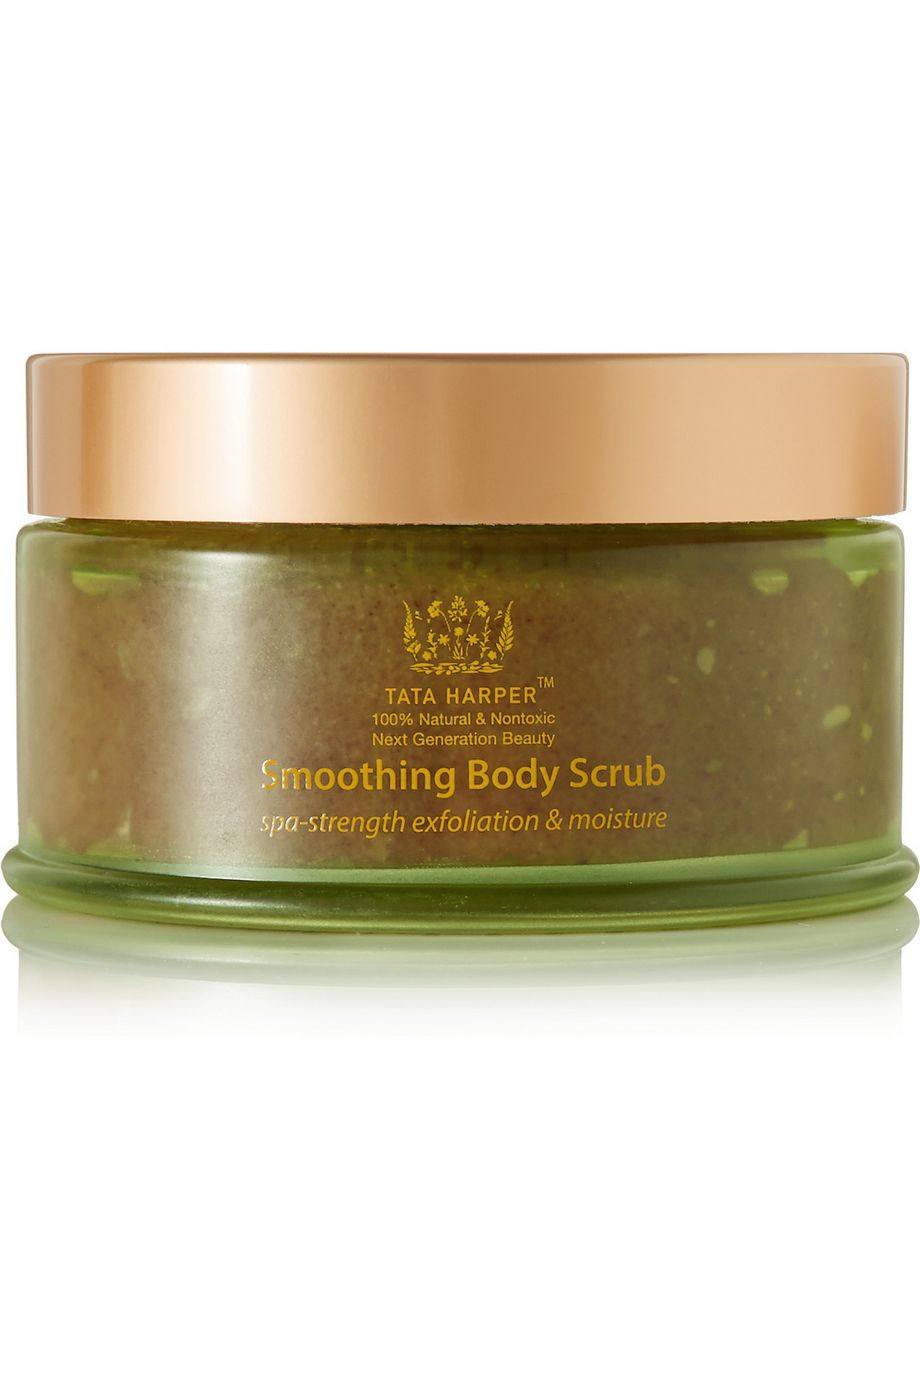 Tata Harper Smoothing Body Scrub, 150ml